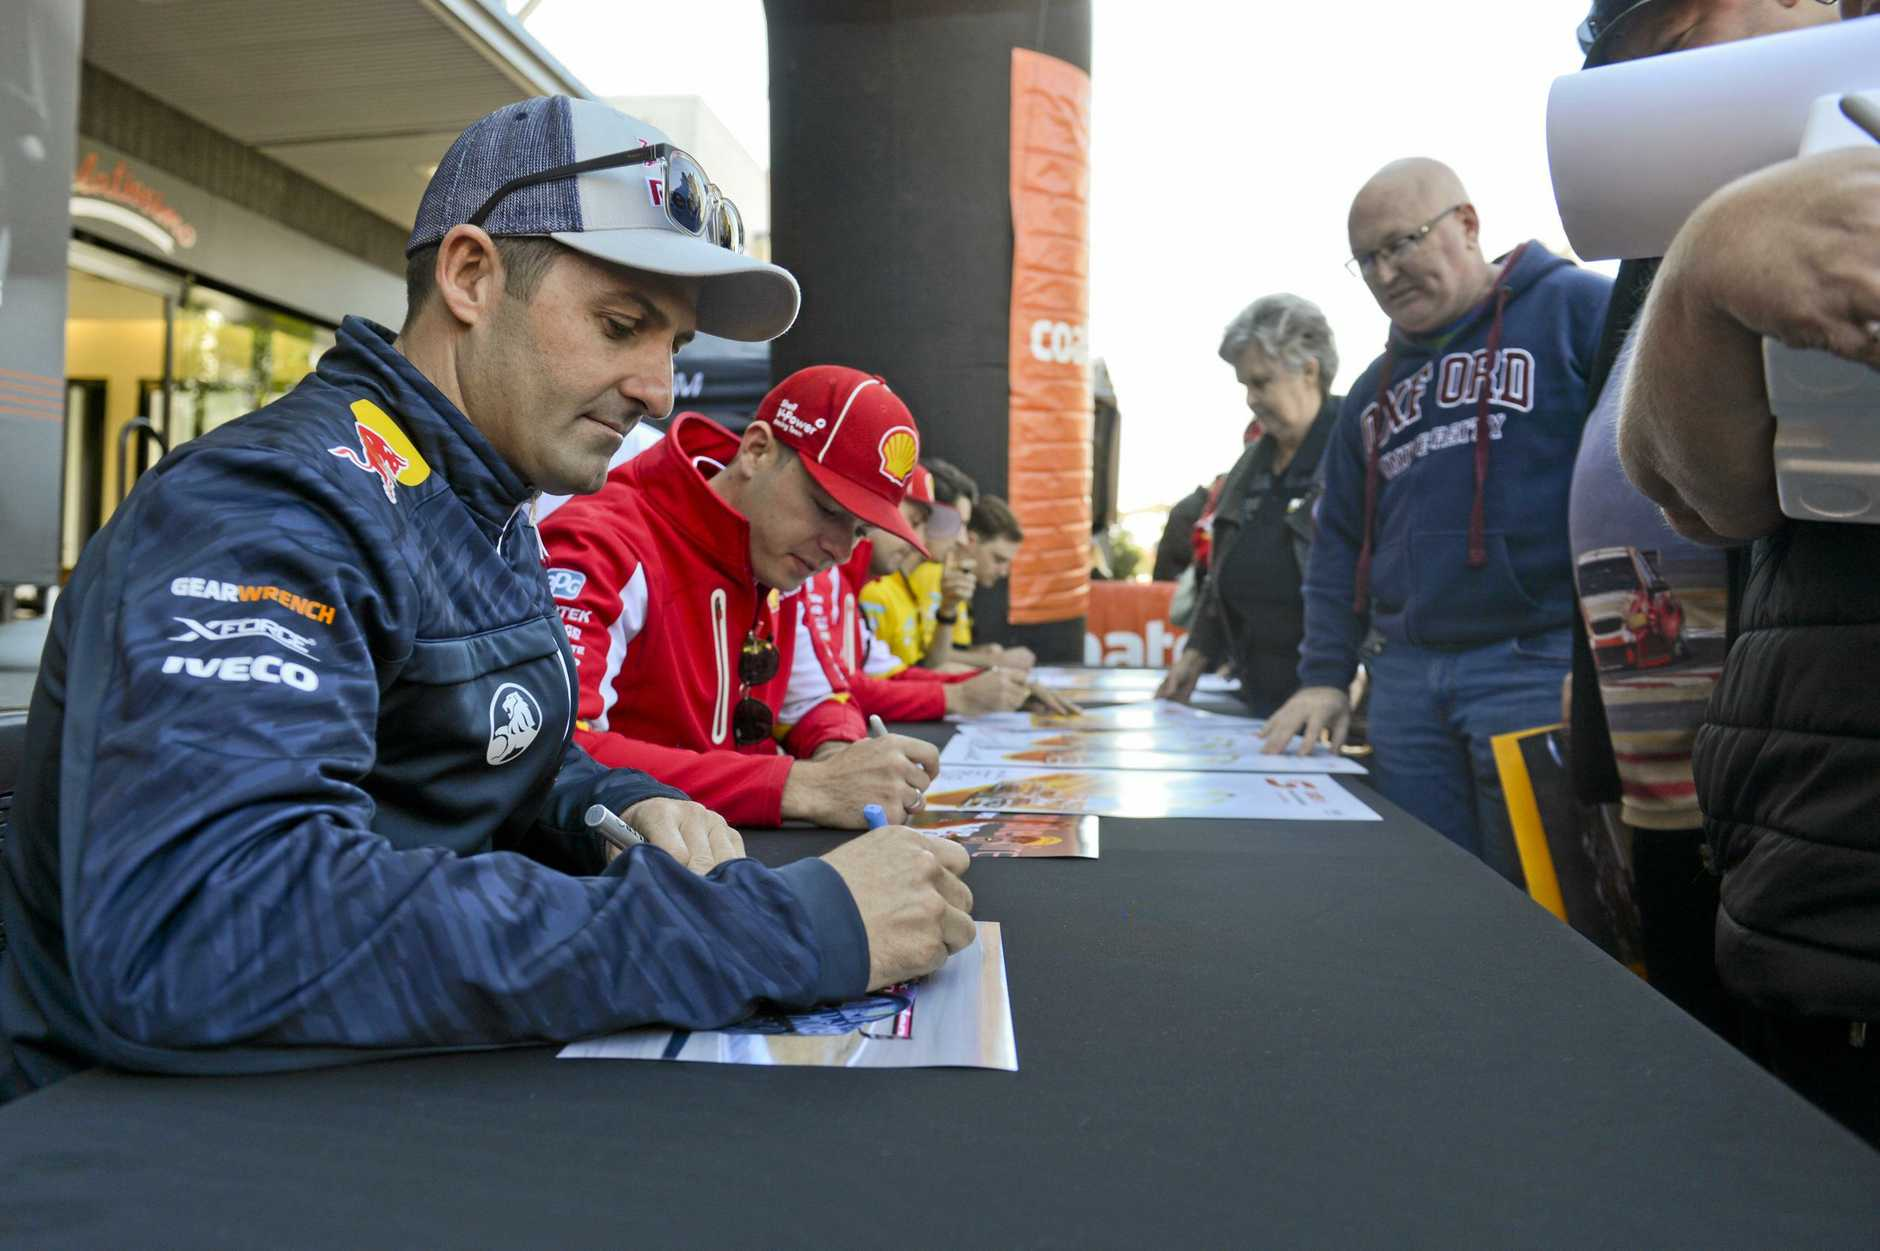 Ipswich SuperSprint, Community Day. JAmie Whincup.